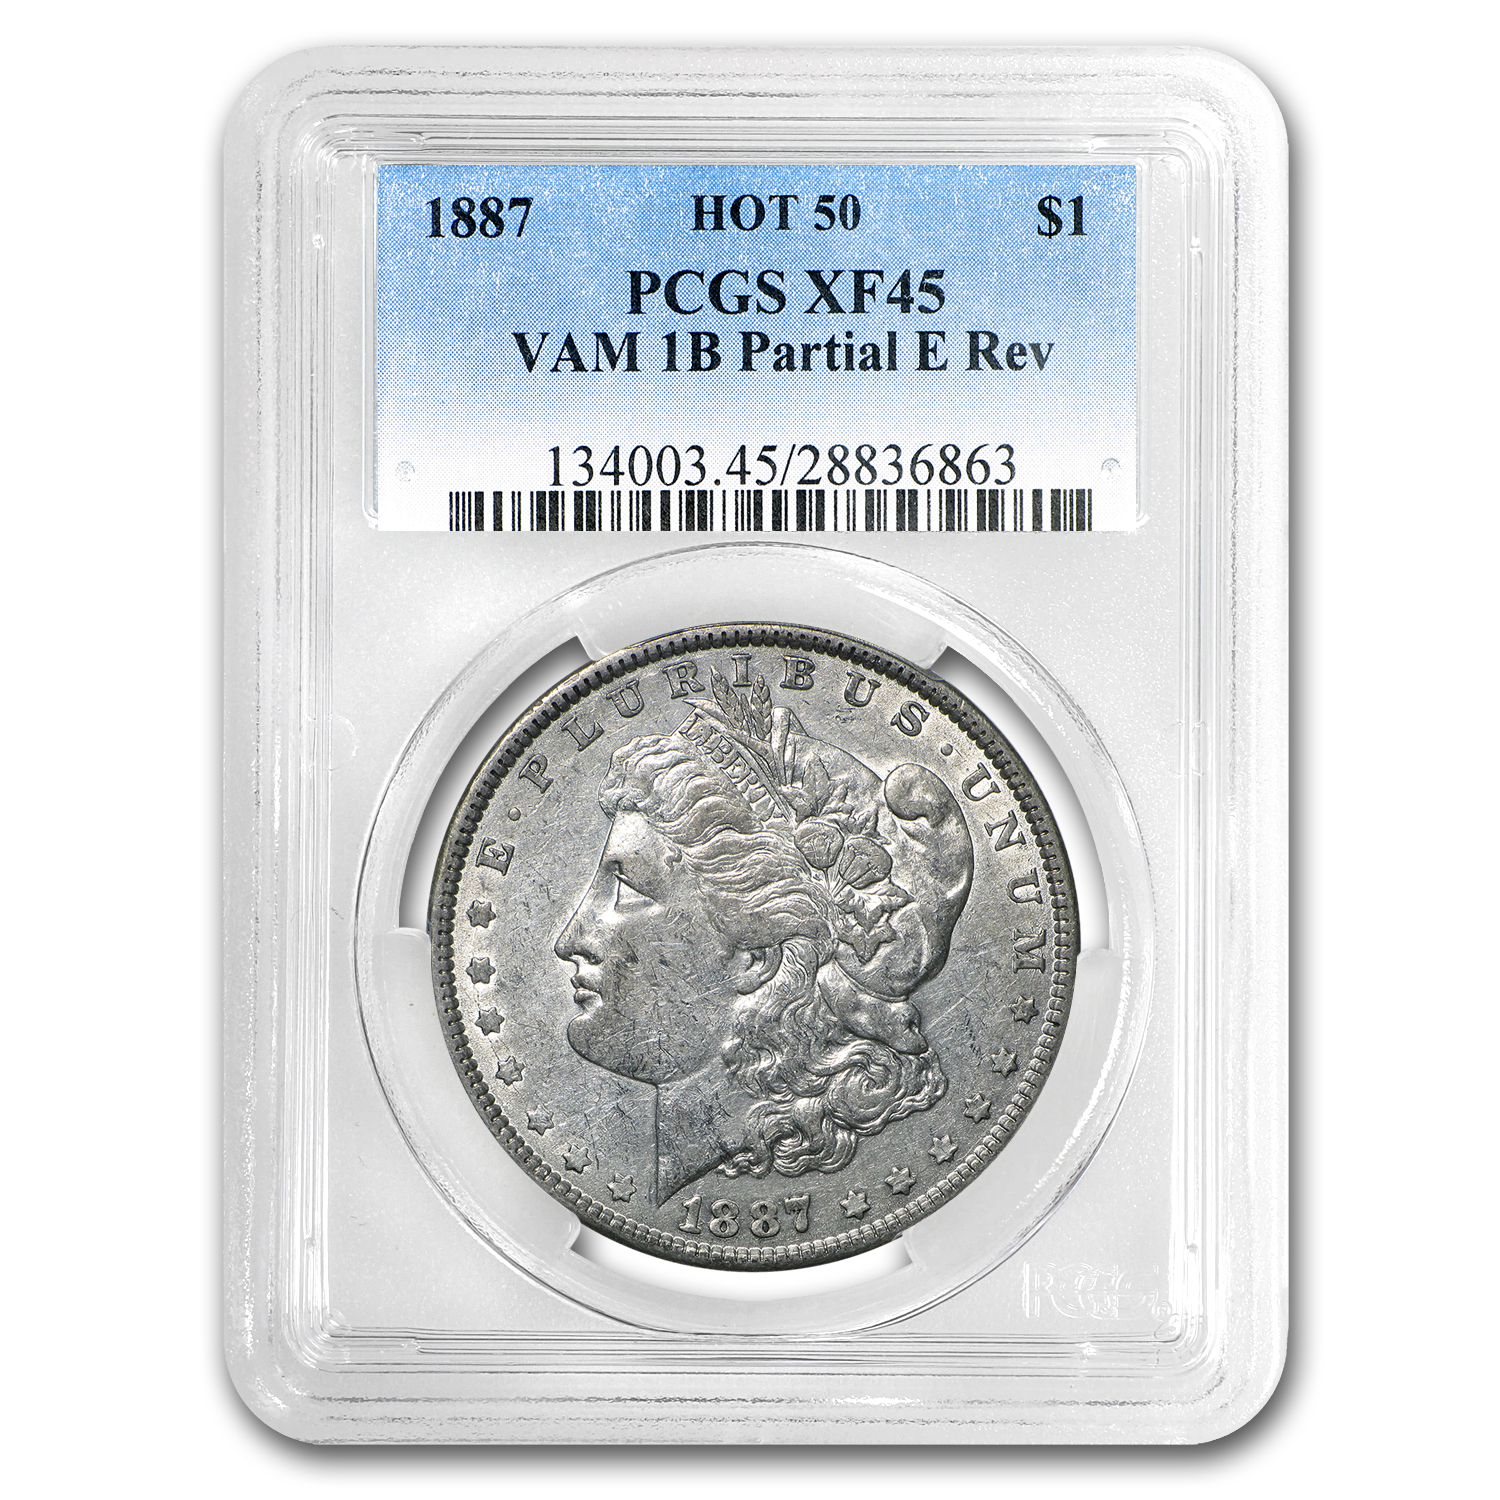 1887 Morgan Dollar XF-45 PCGS VAM-1B Partial E Reverse Hot-50